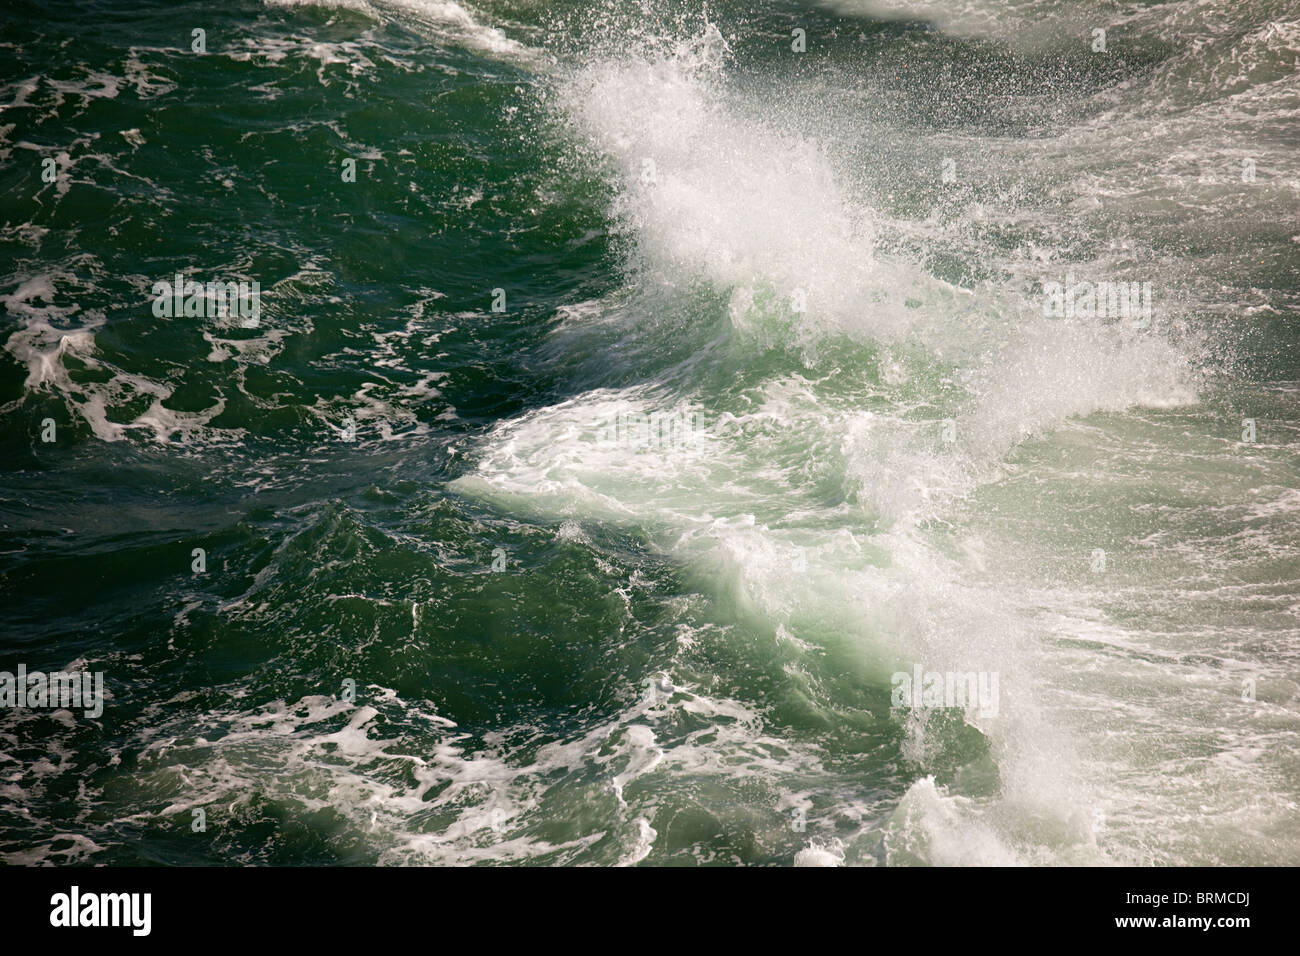 Spray from breaking wave - Stock Image